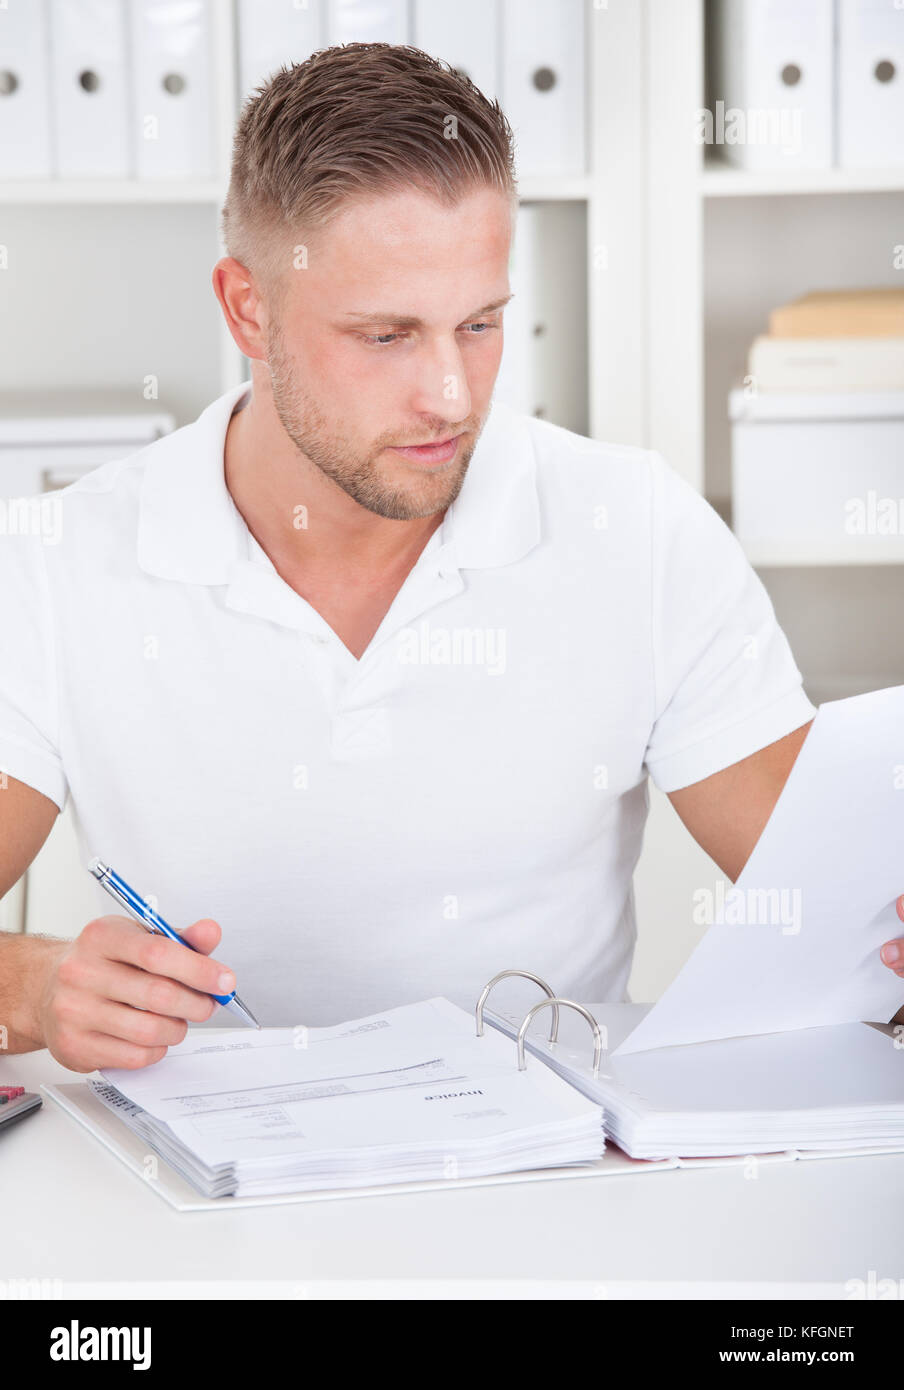 Businessman working at his desk in the office sitting writing notes in a short-sleeved white shirt - Stock Image